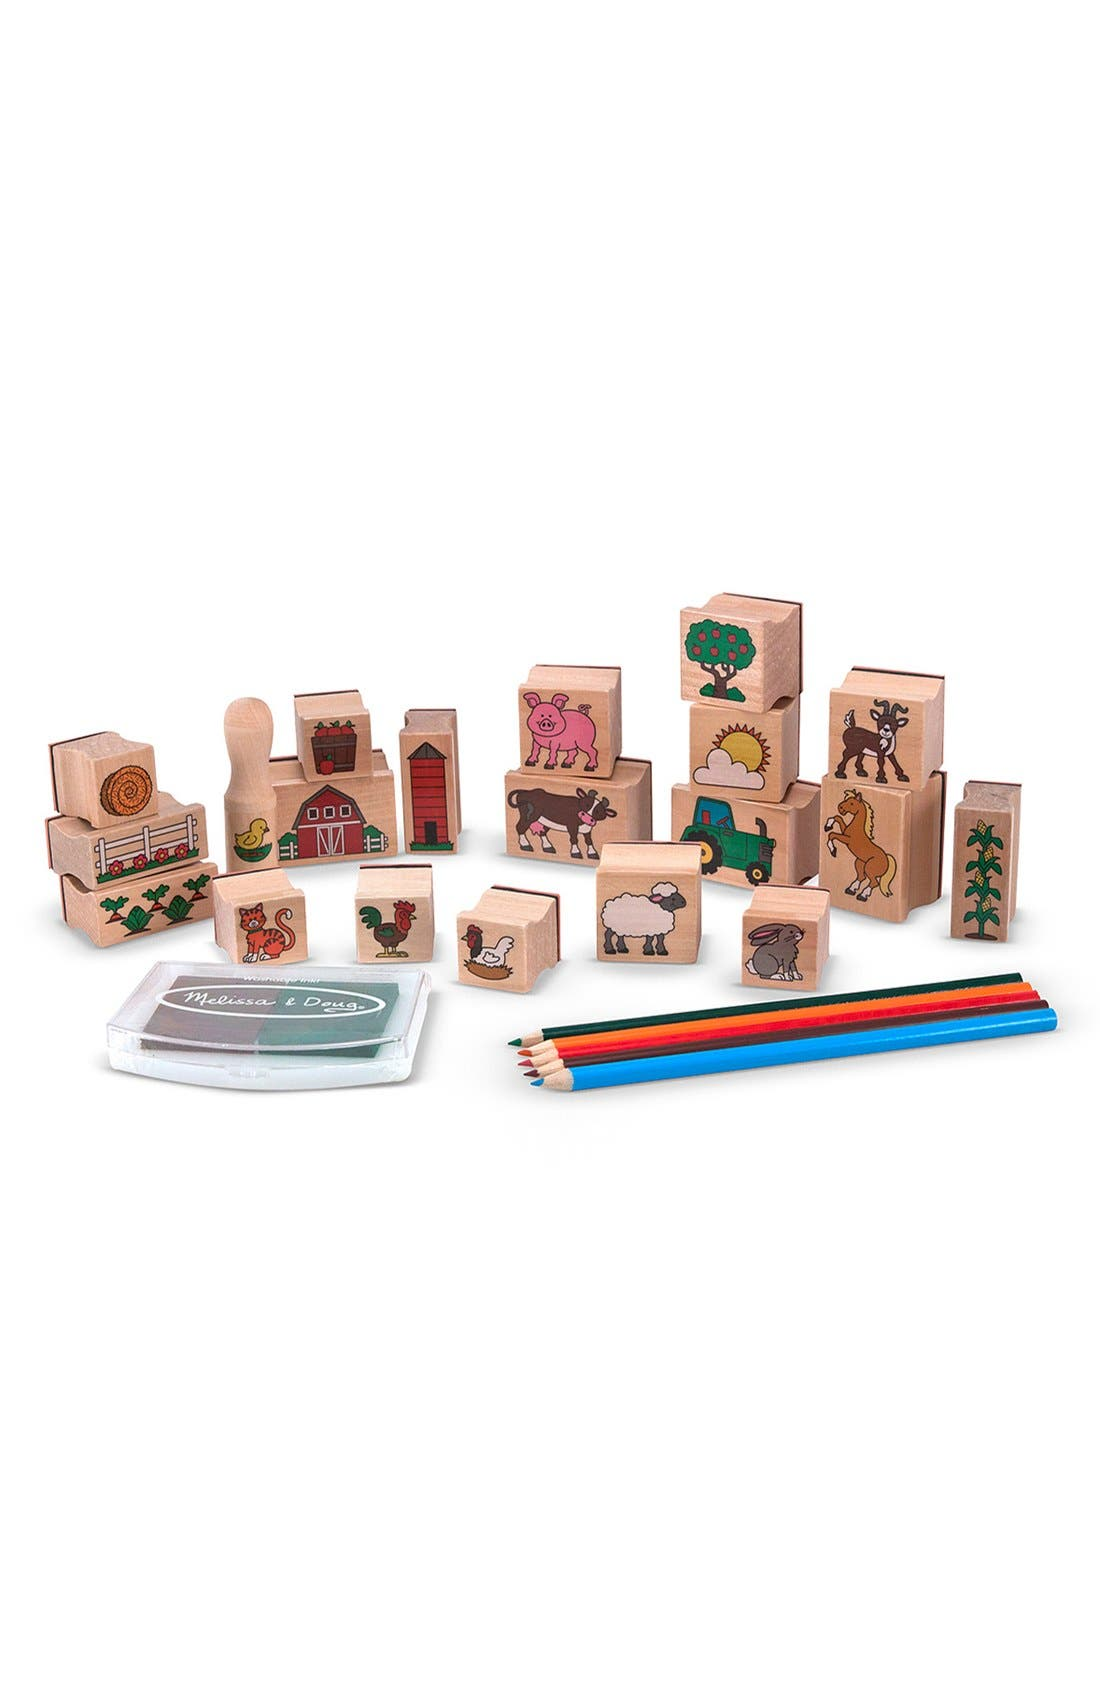 'Stamp-A-Scene - Farm' Stamp Set,                             Alternate thumbnail 2, color,                             NONE